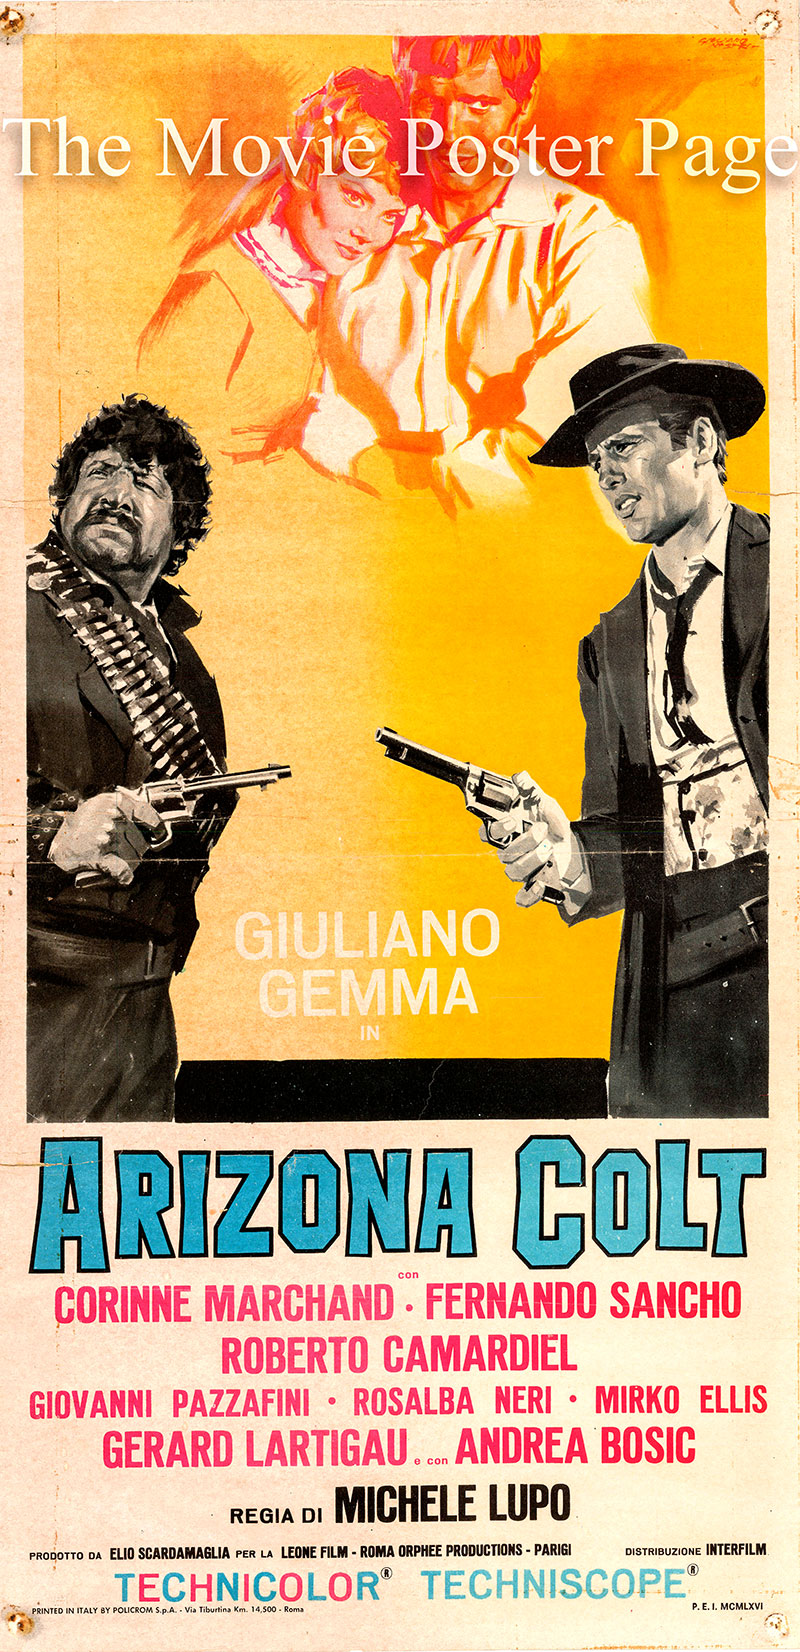 Pictured is an Italian locandina poster for the 1966 Michele Lupo film Man From Nowhere starring Giuliano Gemma as Arizona Colt.